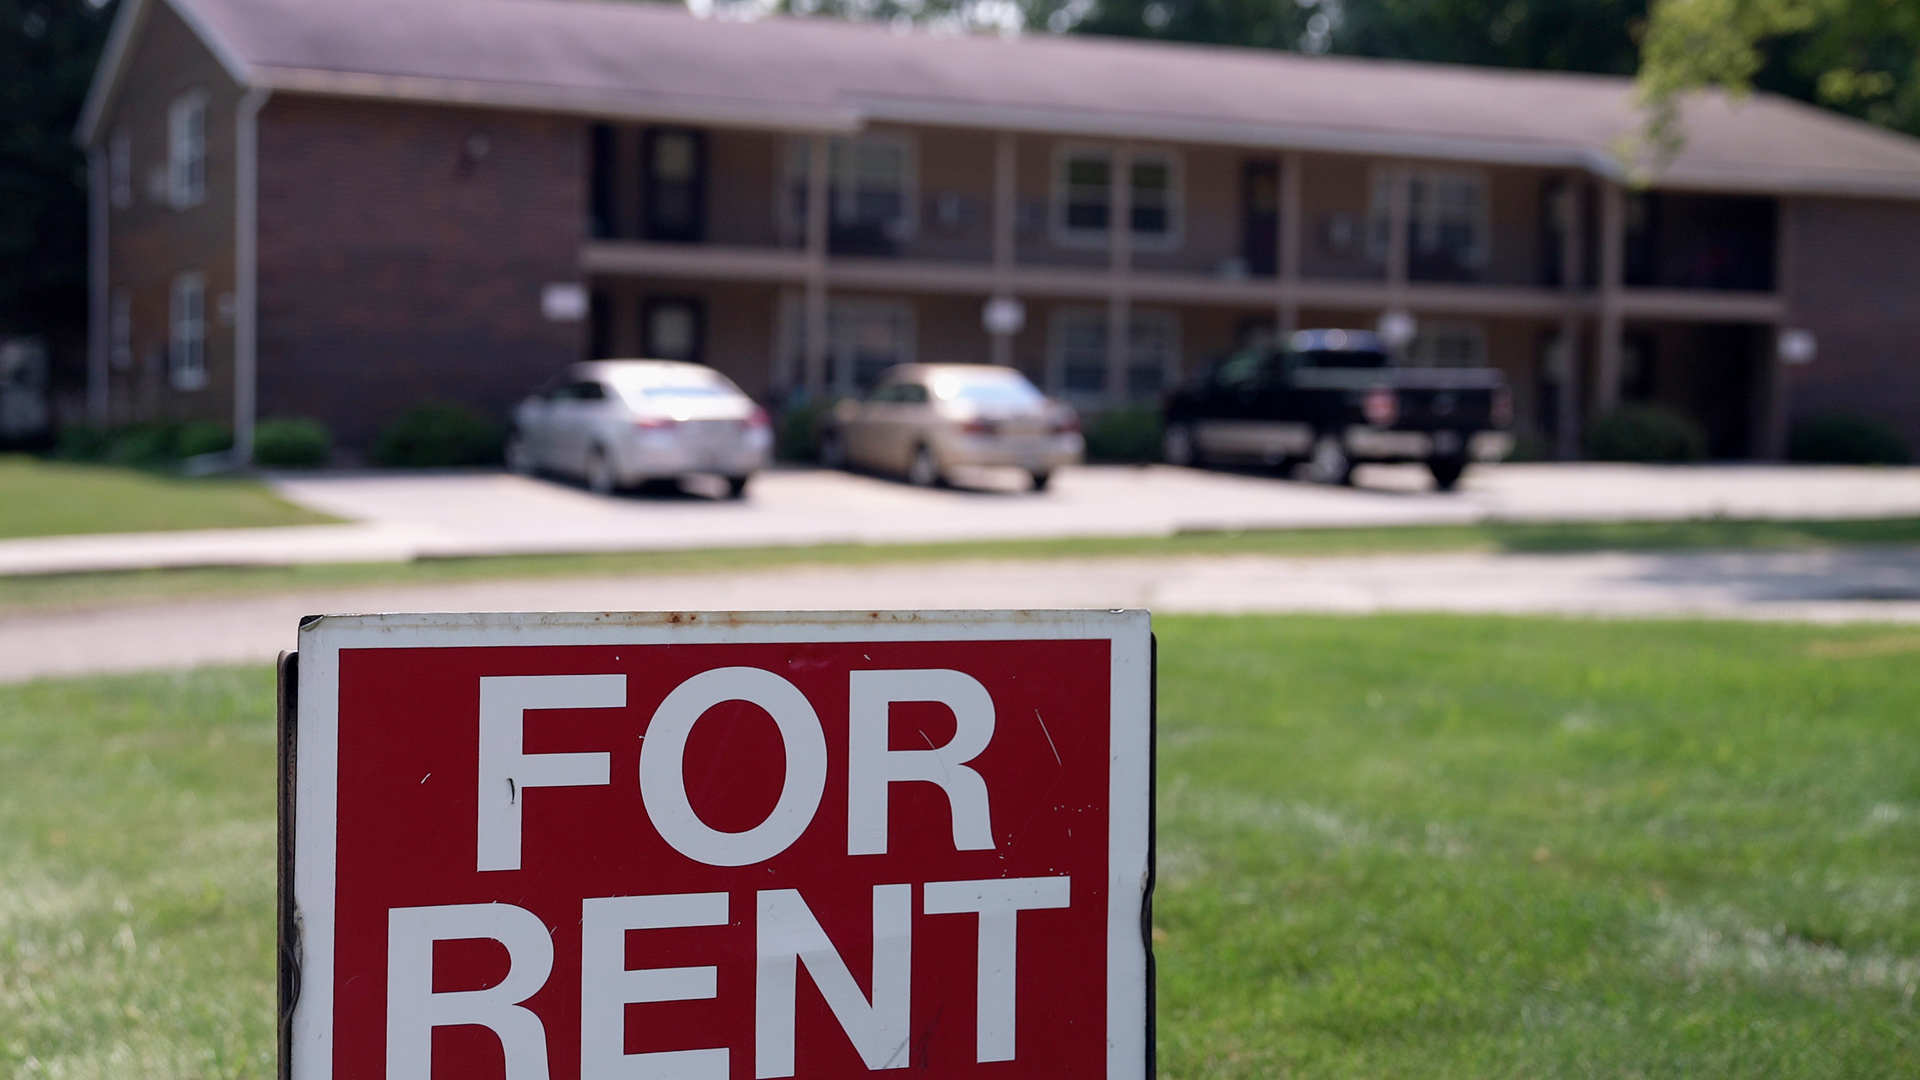 For Rent sign with apartment in background